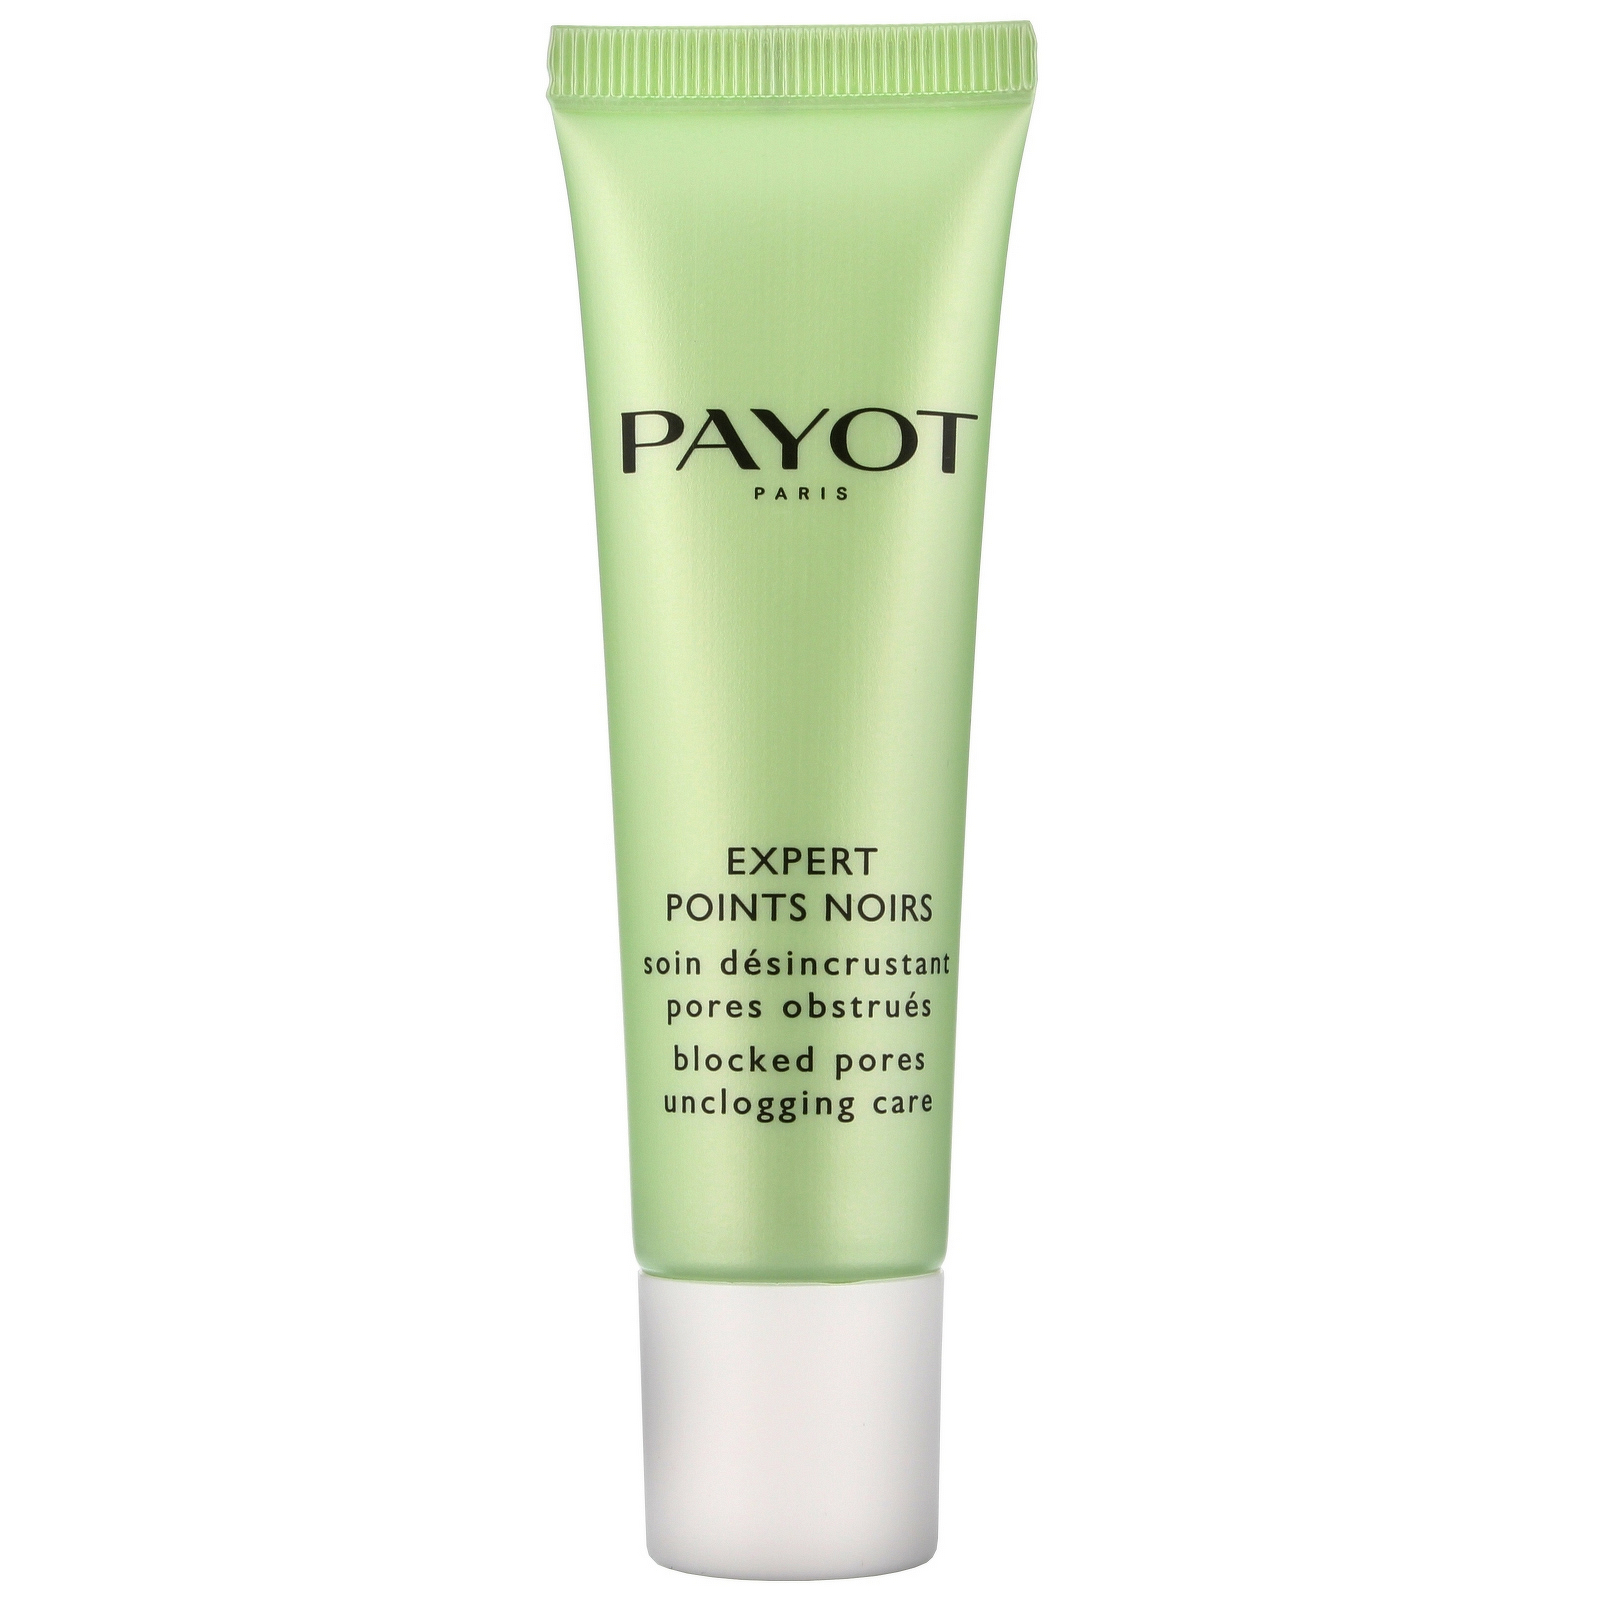 Payot Paris Pâte Grise Expert Points Noirs: Blocked Pores Unclogging Care 30ml